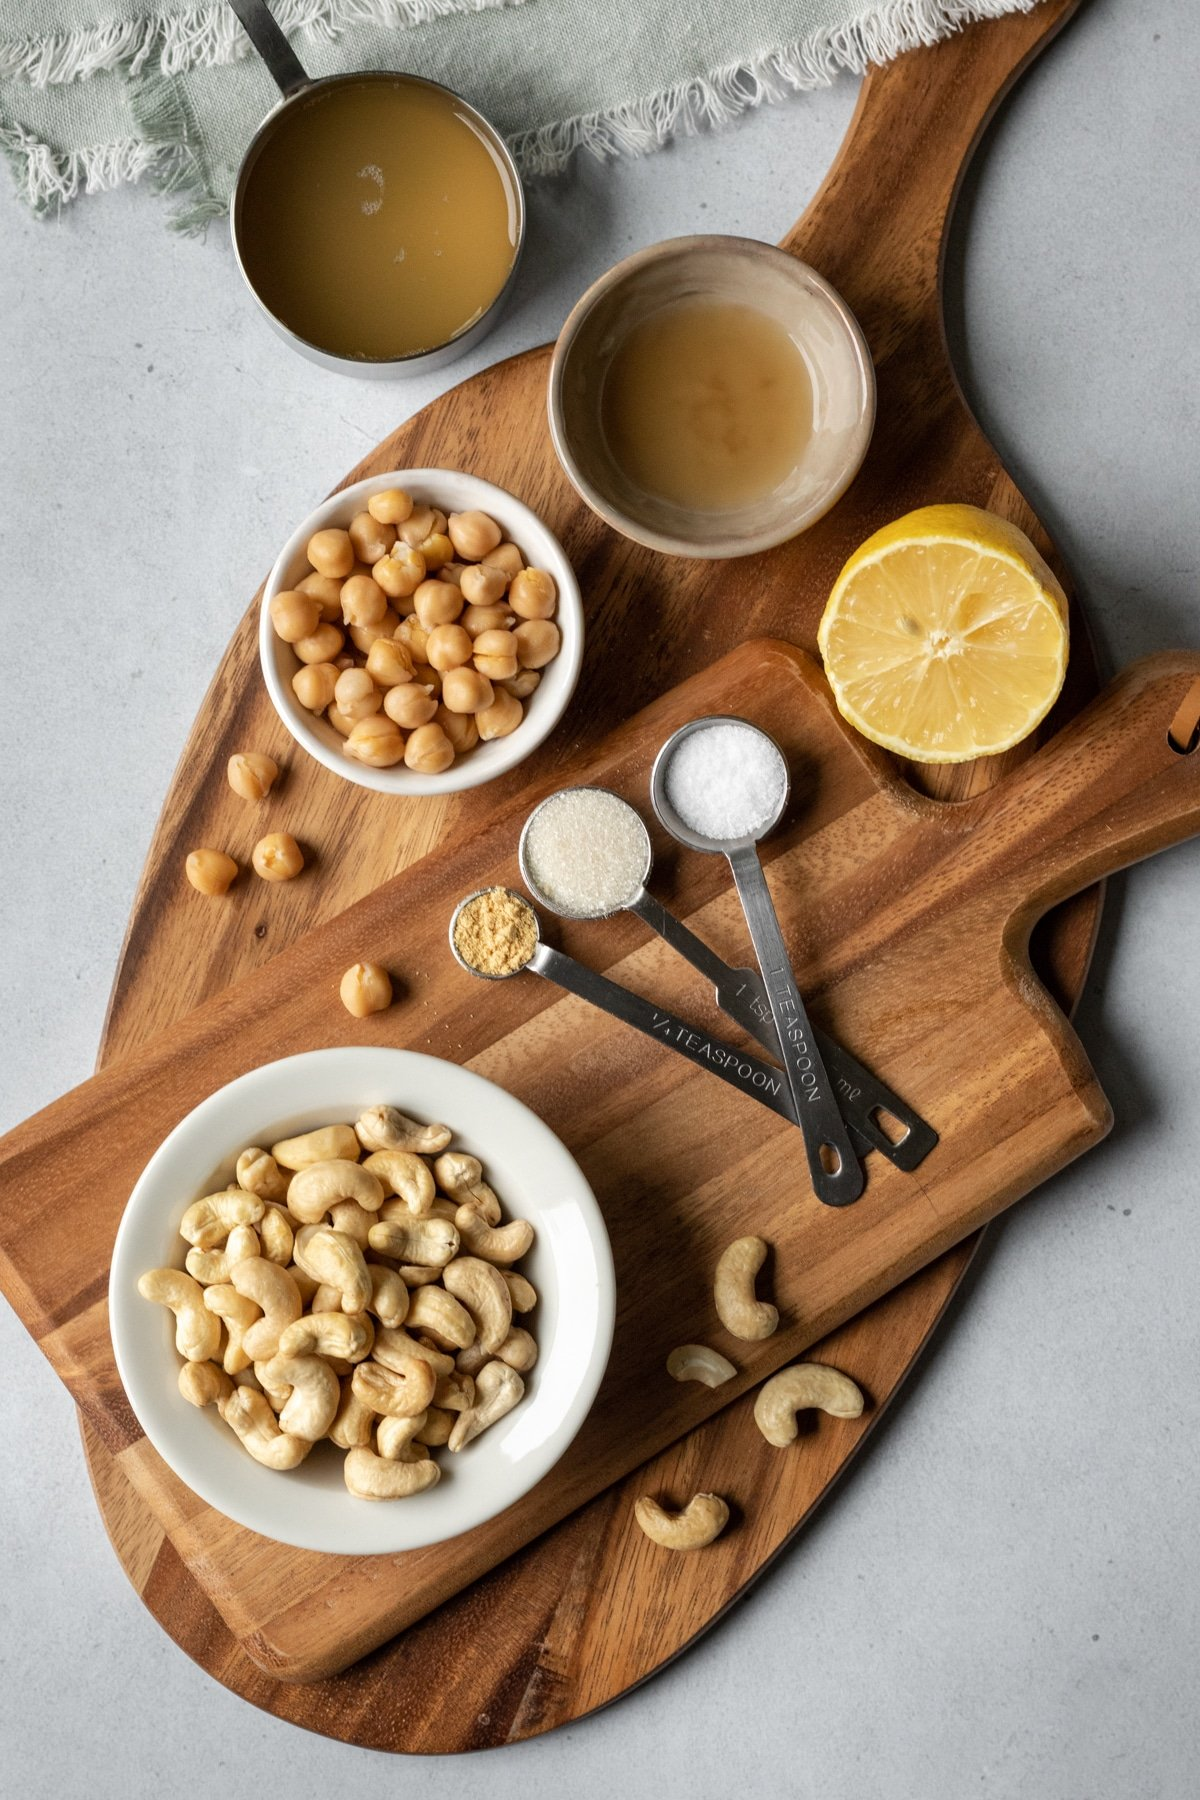 aquafaba mayo ingredients laid out on a cutting board.